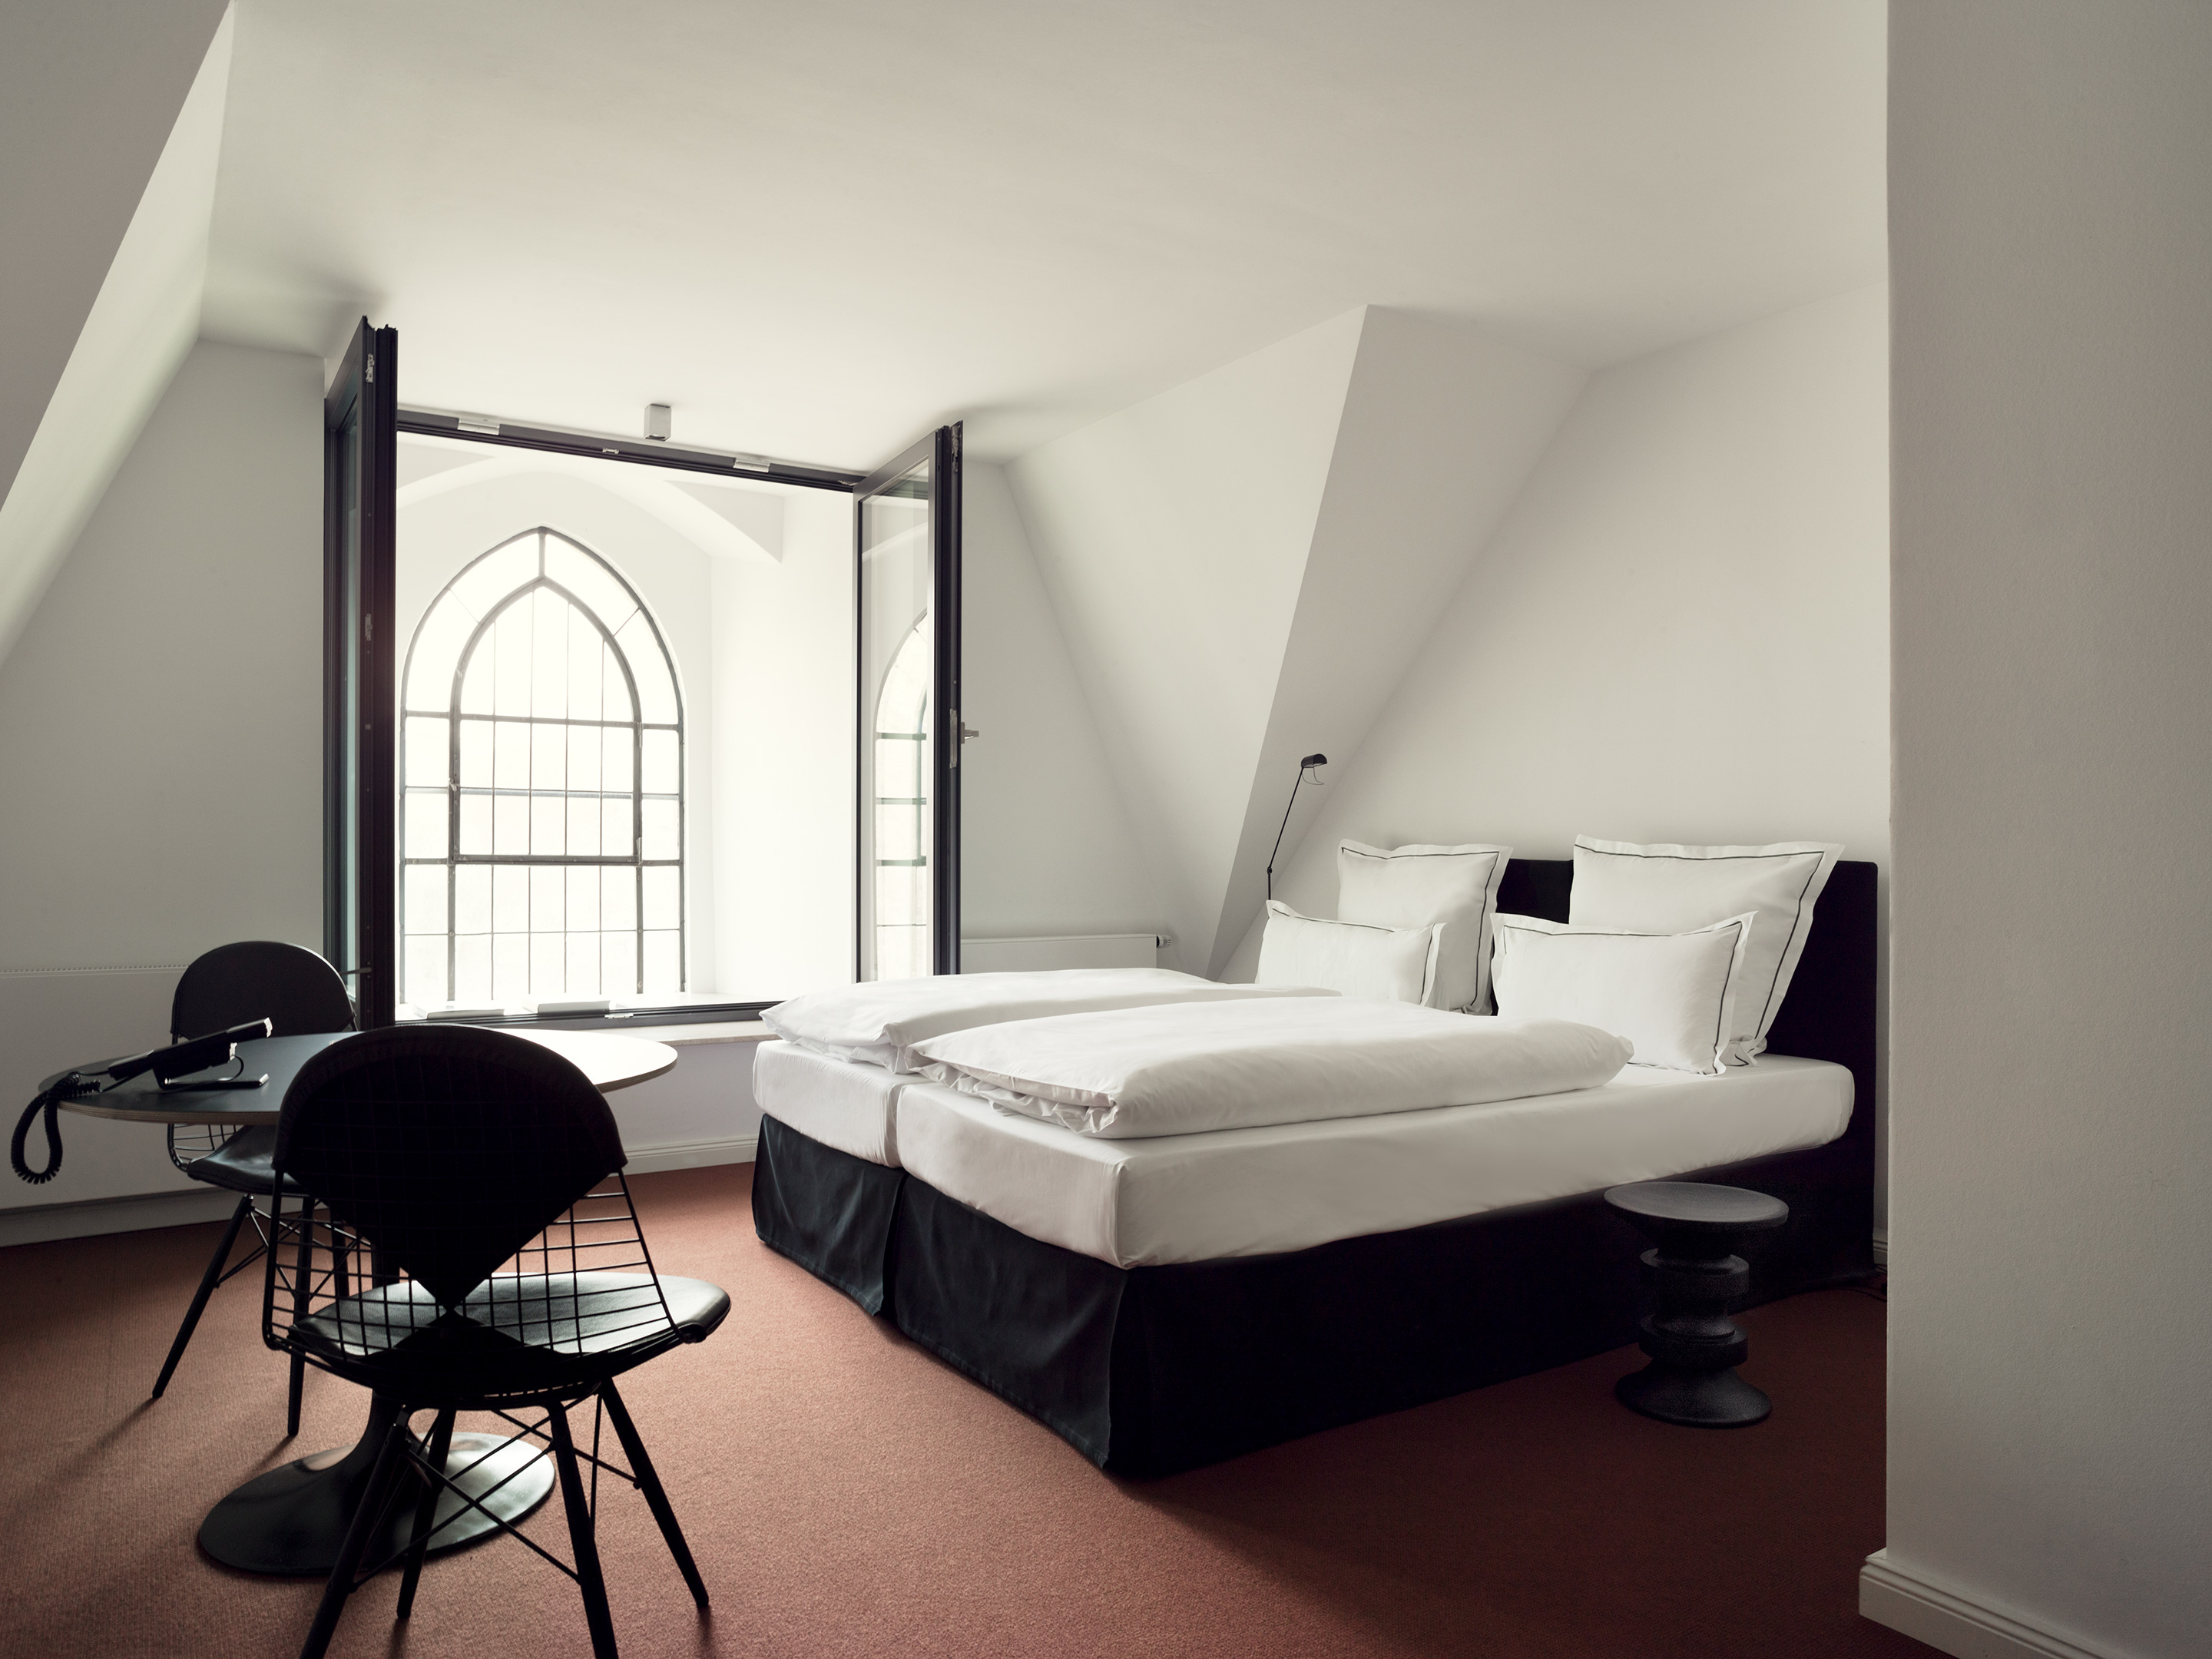 rooms suites at the qvest in cologne germany design hotels. Black Bedroom Furniture Sets. Home Design Ideas